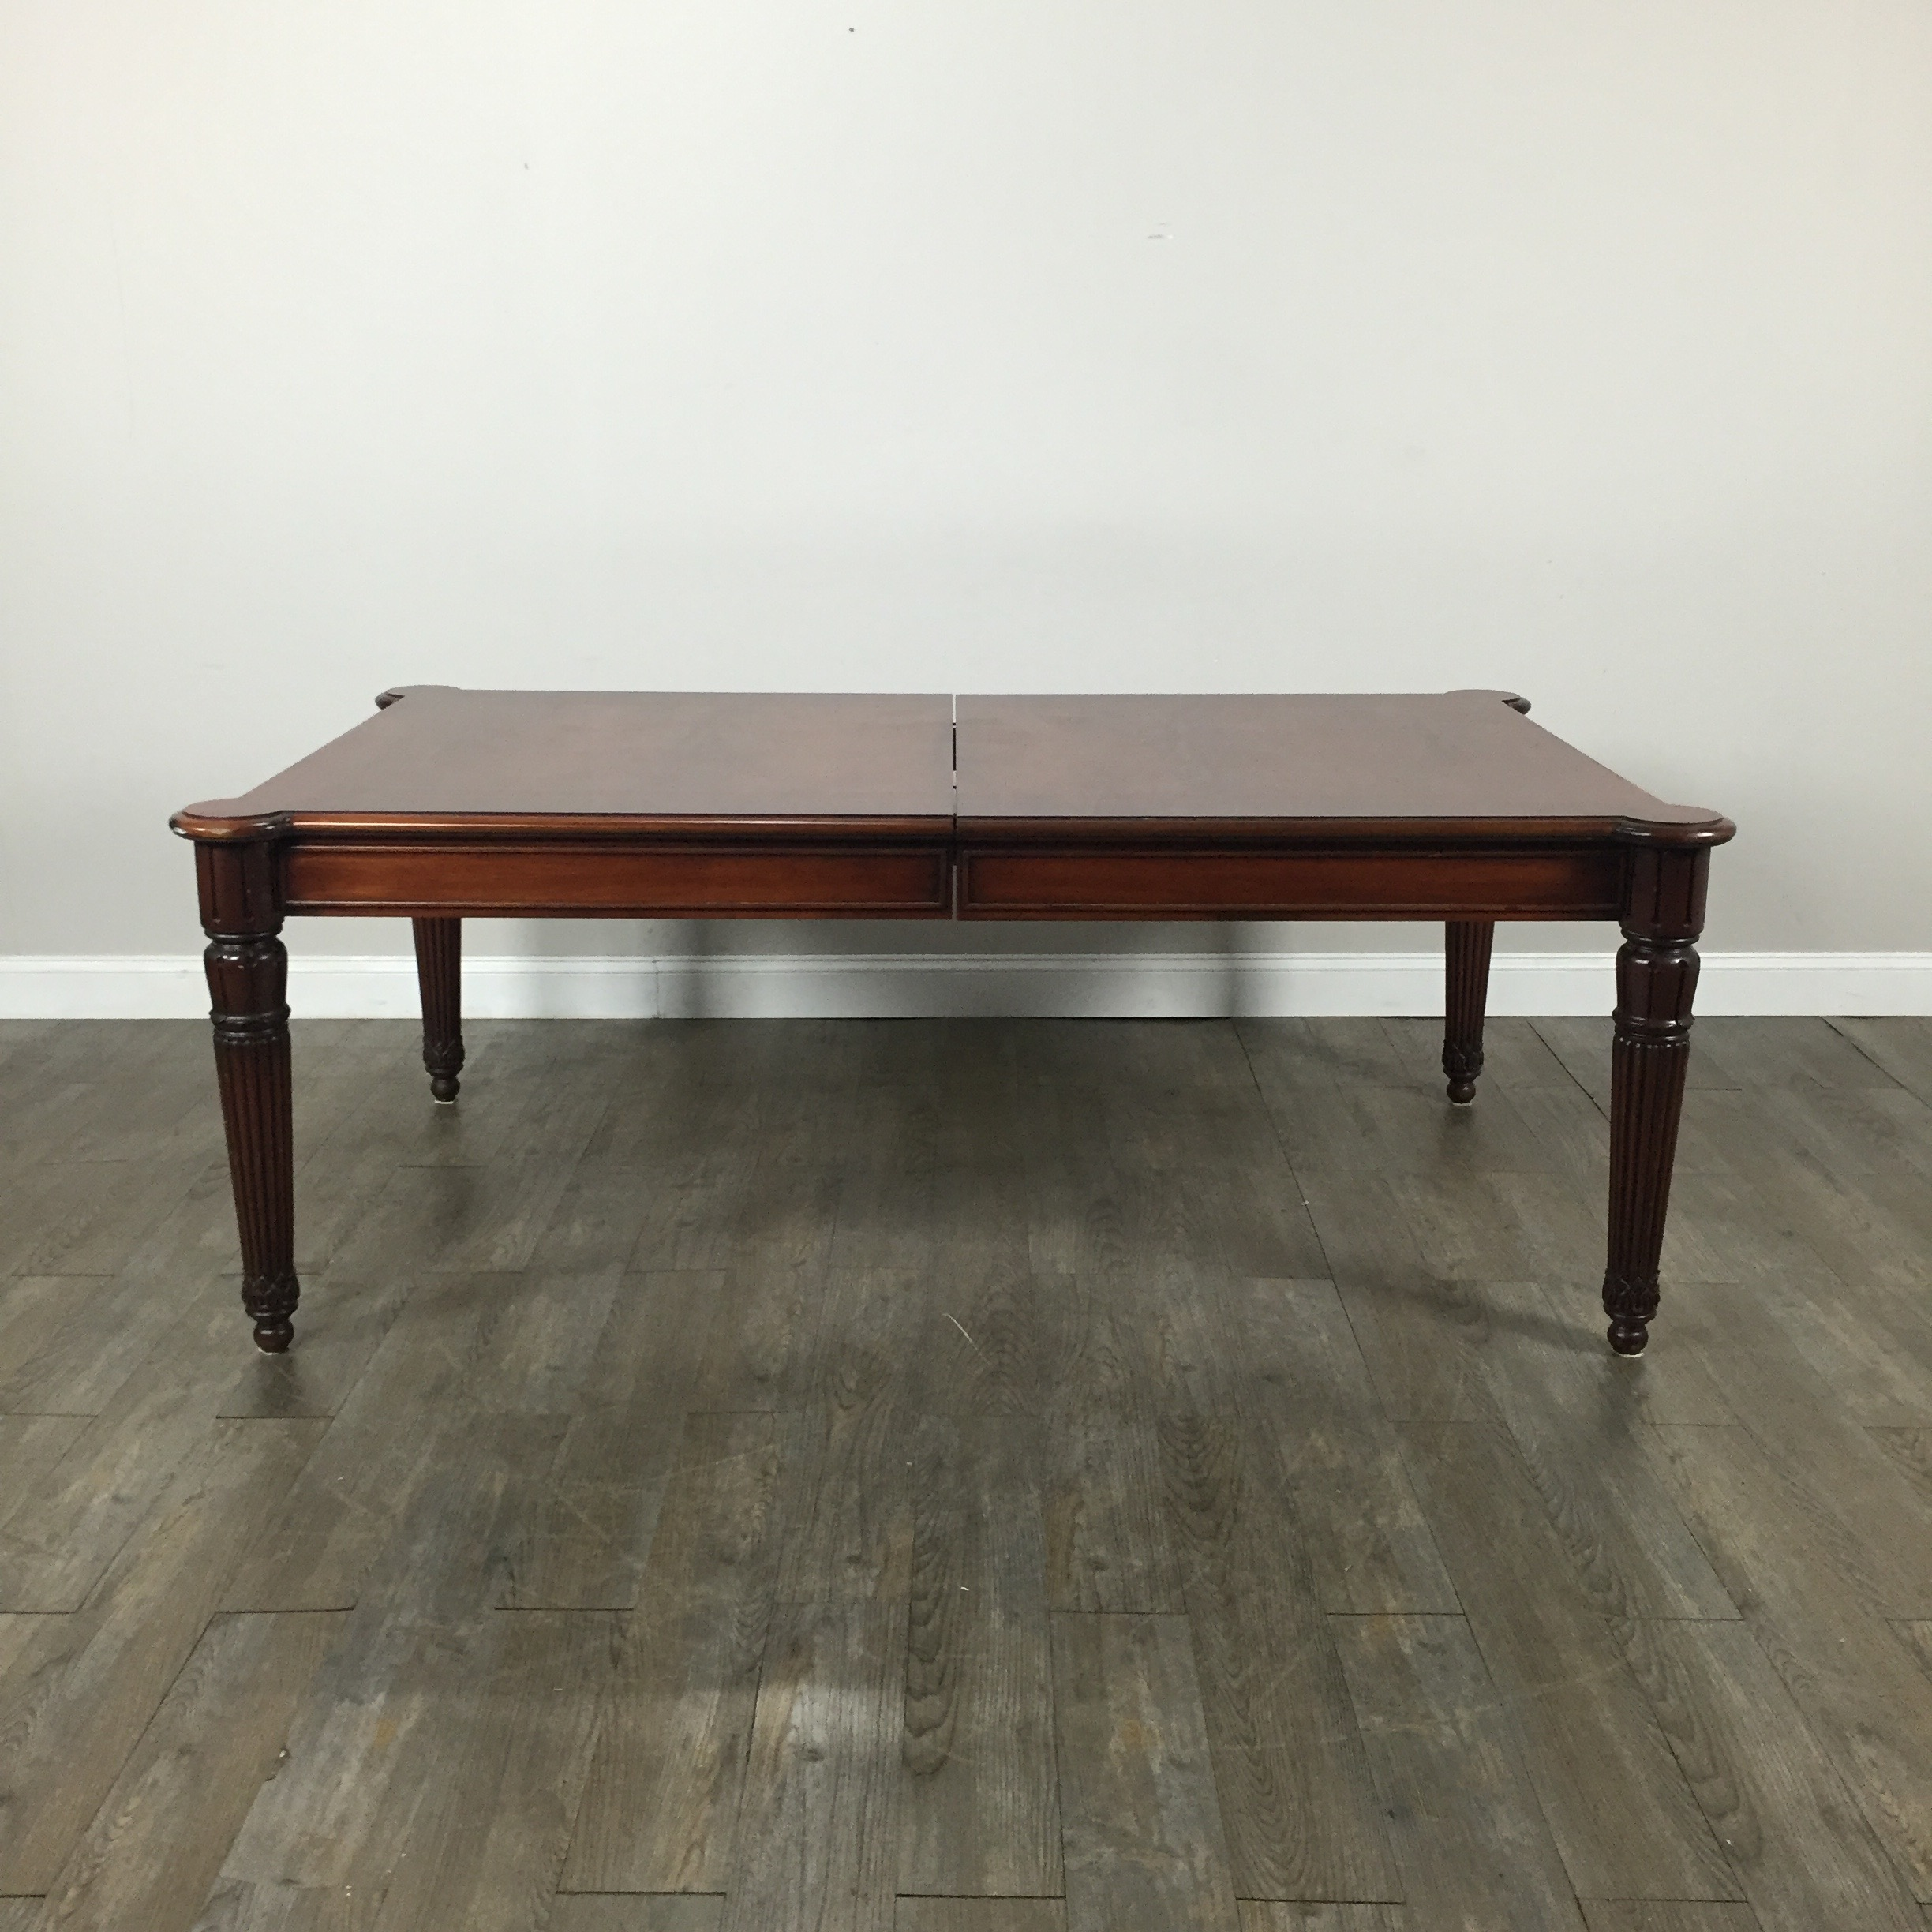 Henredon Mahogany Dining Table With 2 Leaves Chairish : ea3ccae1 51ba 4003 ab47 9cd9f72a8788aspectfitampwidth640ampheight640 from www.chairish.com size 640 x 640 jpeg 36kB